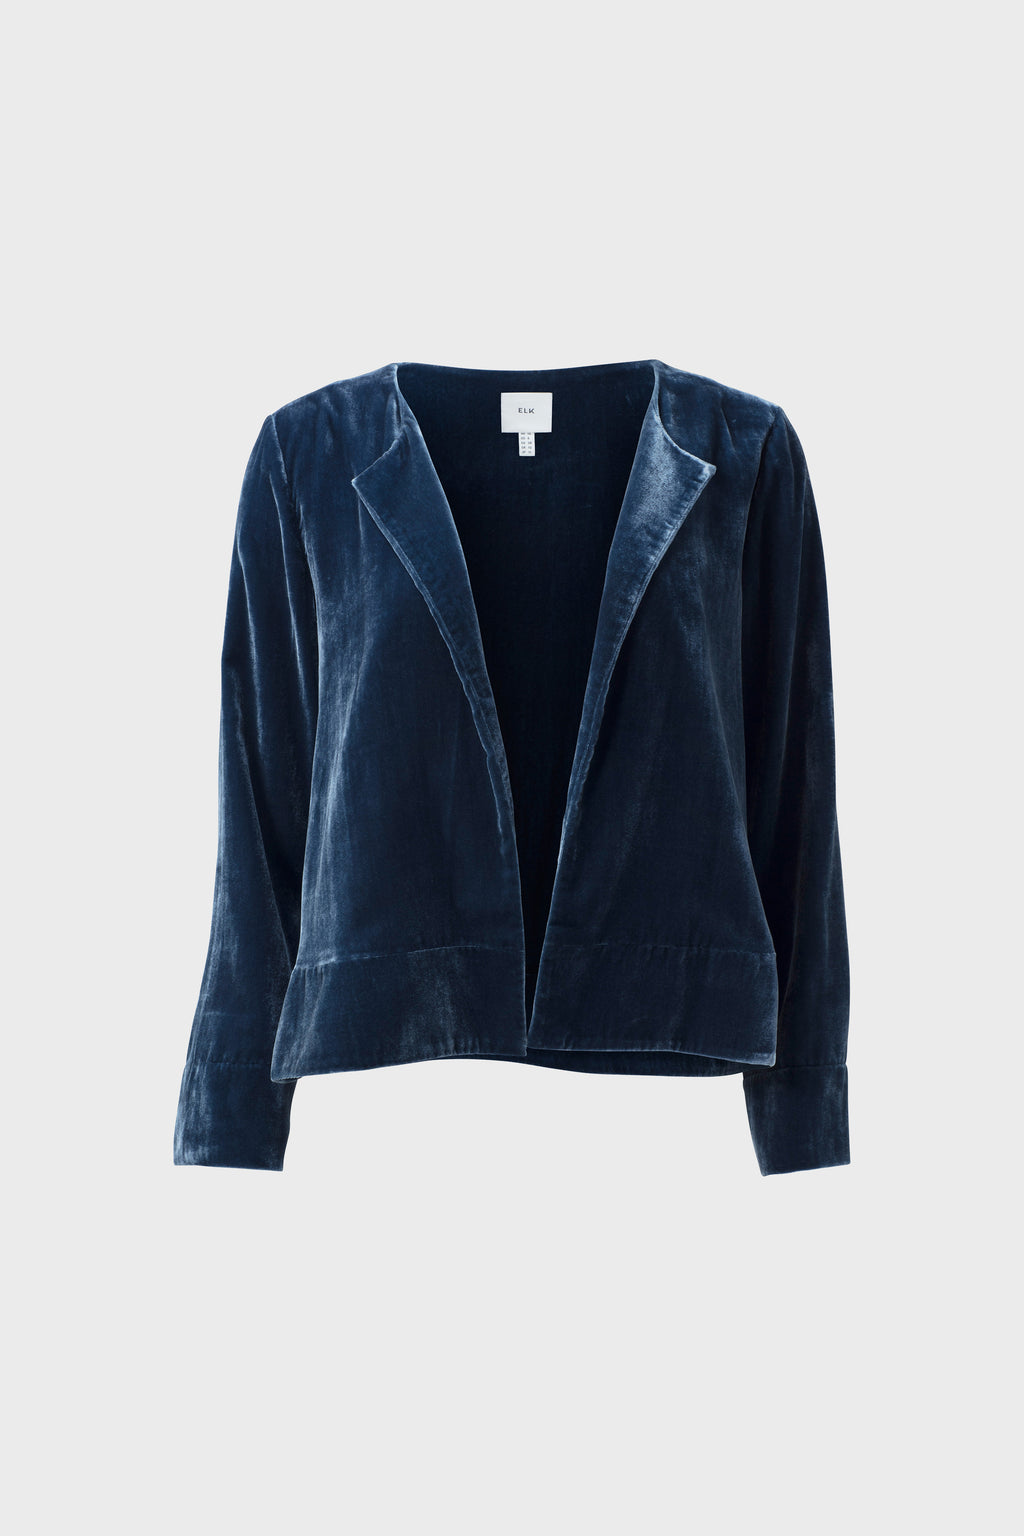 Luxe Velvet Jacket by Elk The Label online at PAYA Boutique